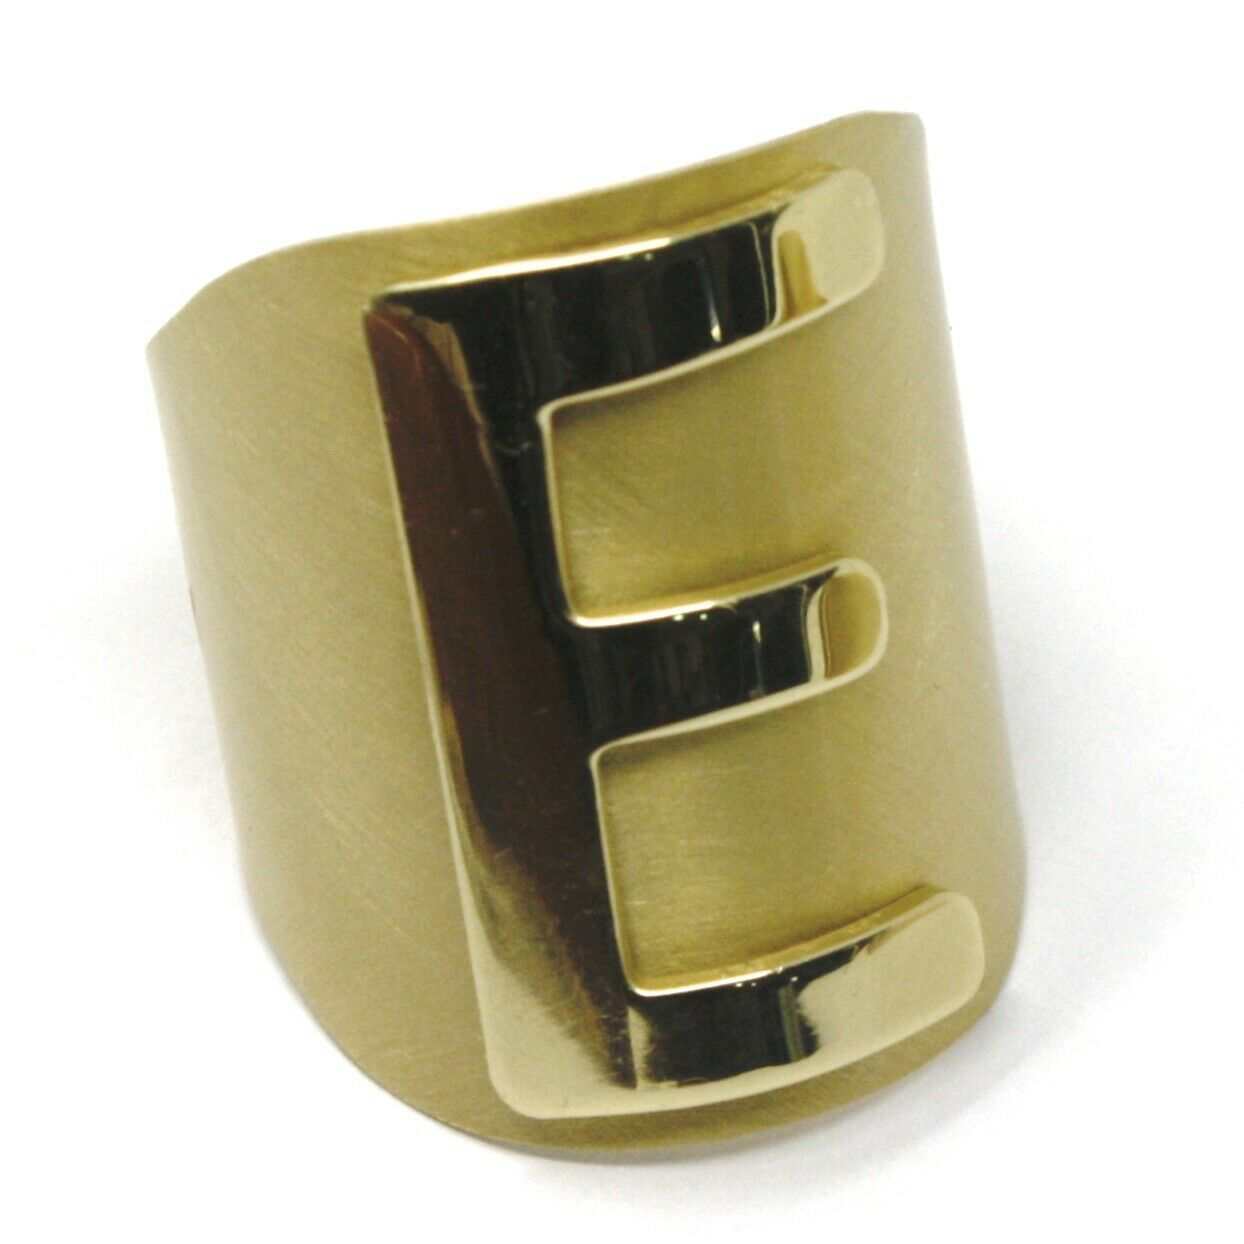 SOLID 925 STERLING SILVER BAND RING, BIG LETTER E, YELLOW SATIN FINISH, SIZABLE